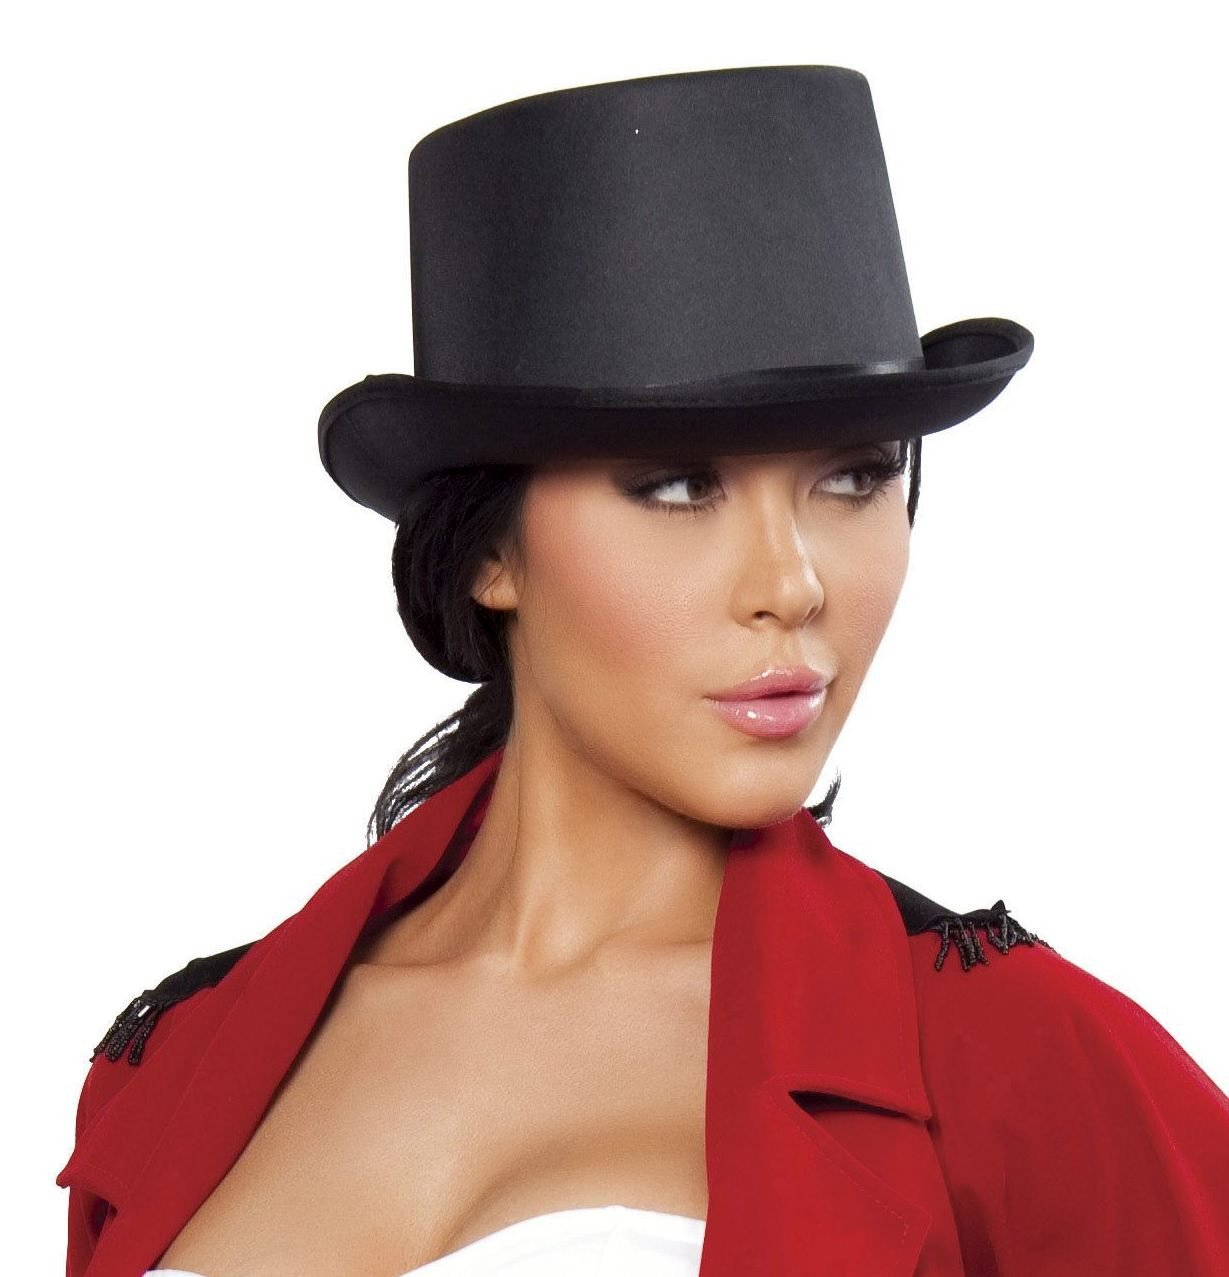 Buy H4271-Top Hat from Rave Fix for $11.90 with Same Day Shipping Designed by Roma Costume, Inc. H4271-AS-O/S